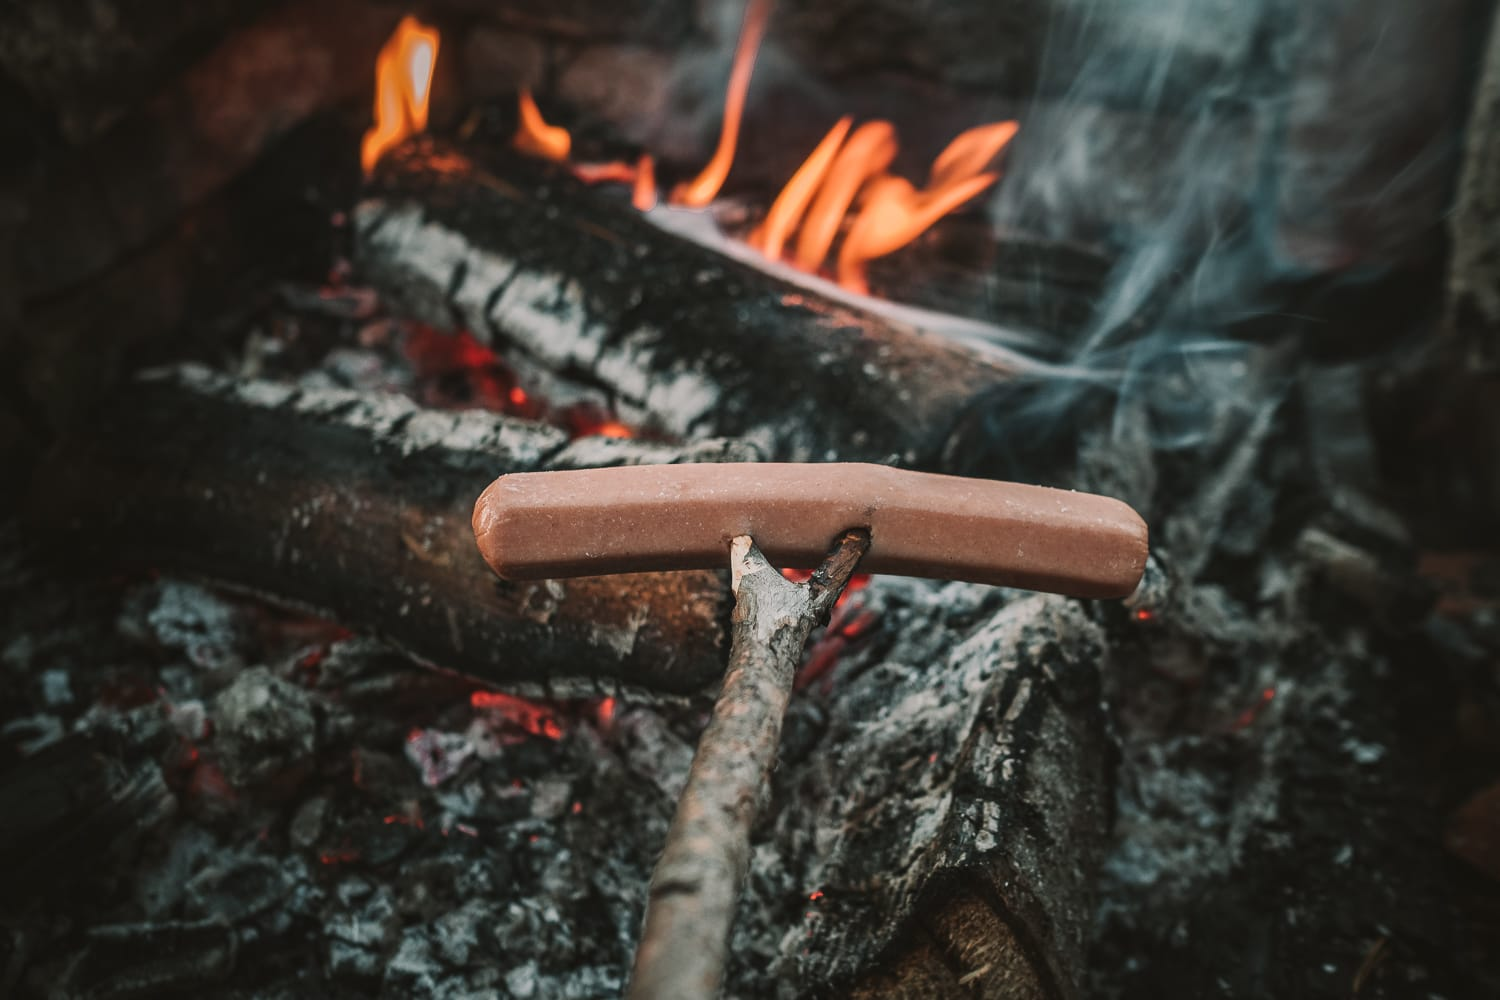 making sausages over open fire